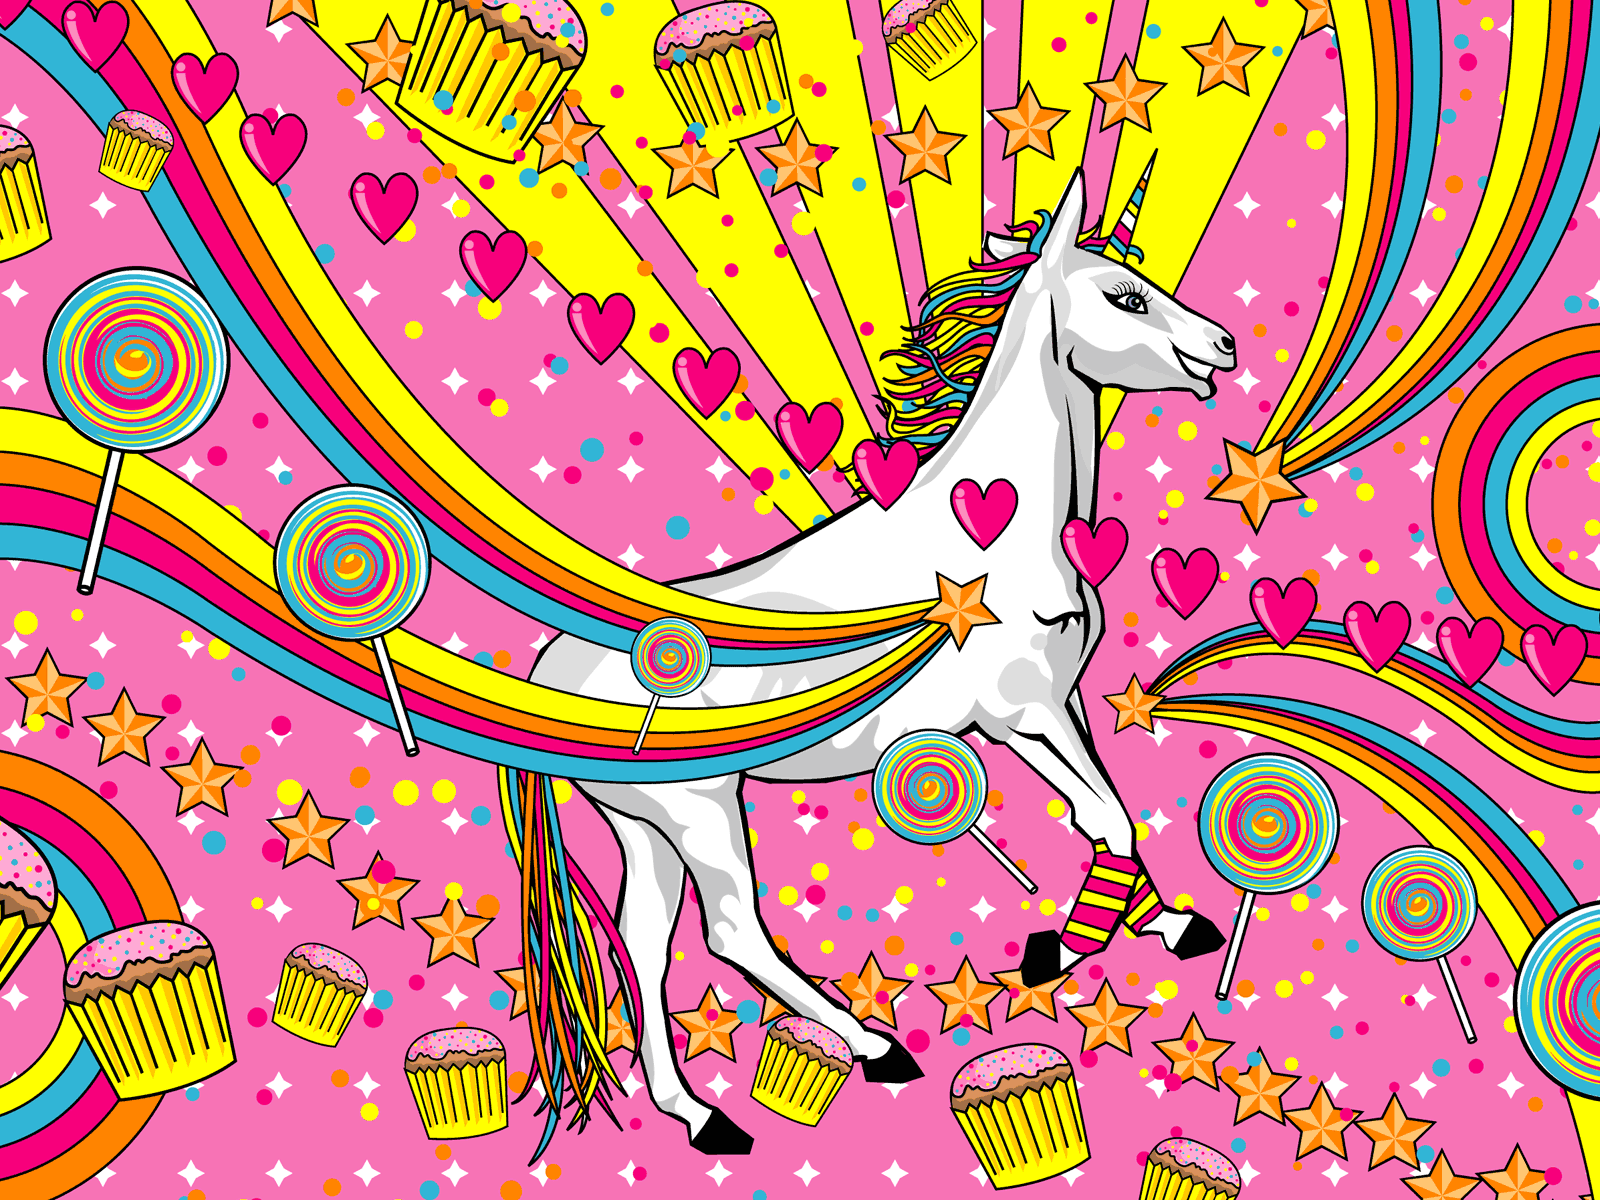 Tag: 100% Quality HD Unicorn Wallpapers, Backgrounds and Pictures for Free, Herman Shields